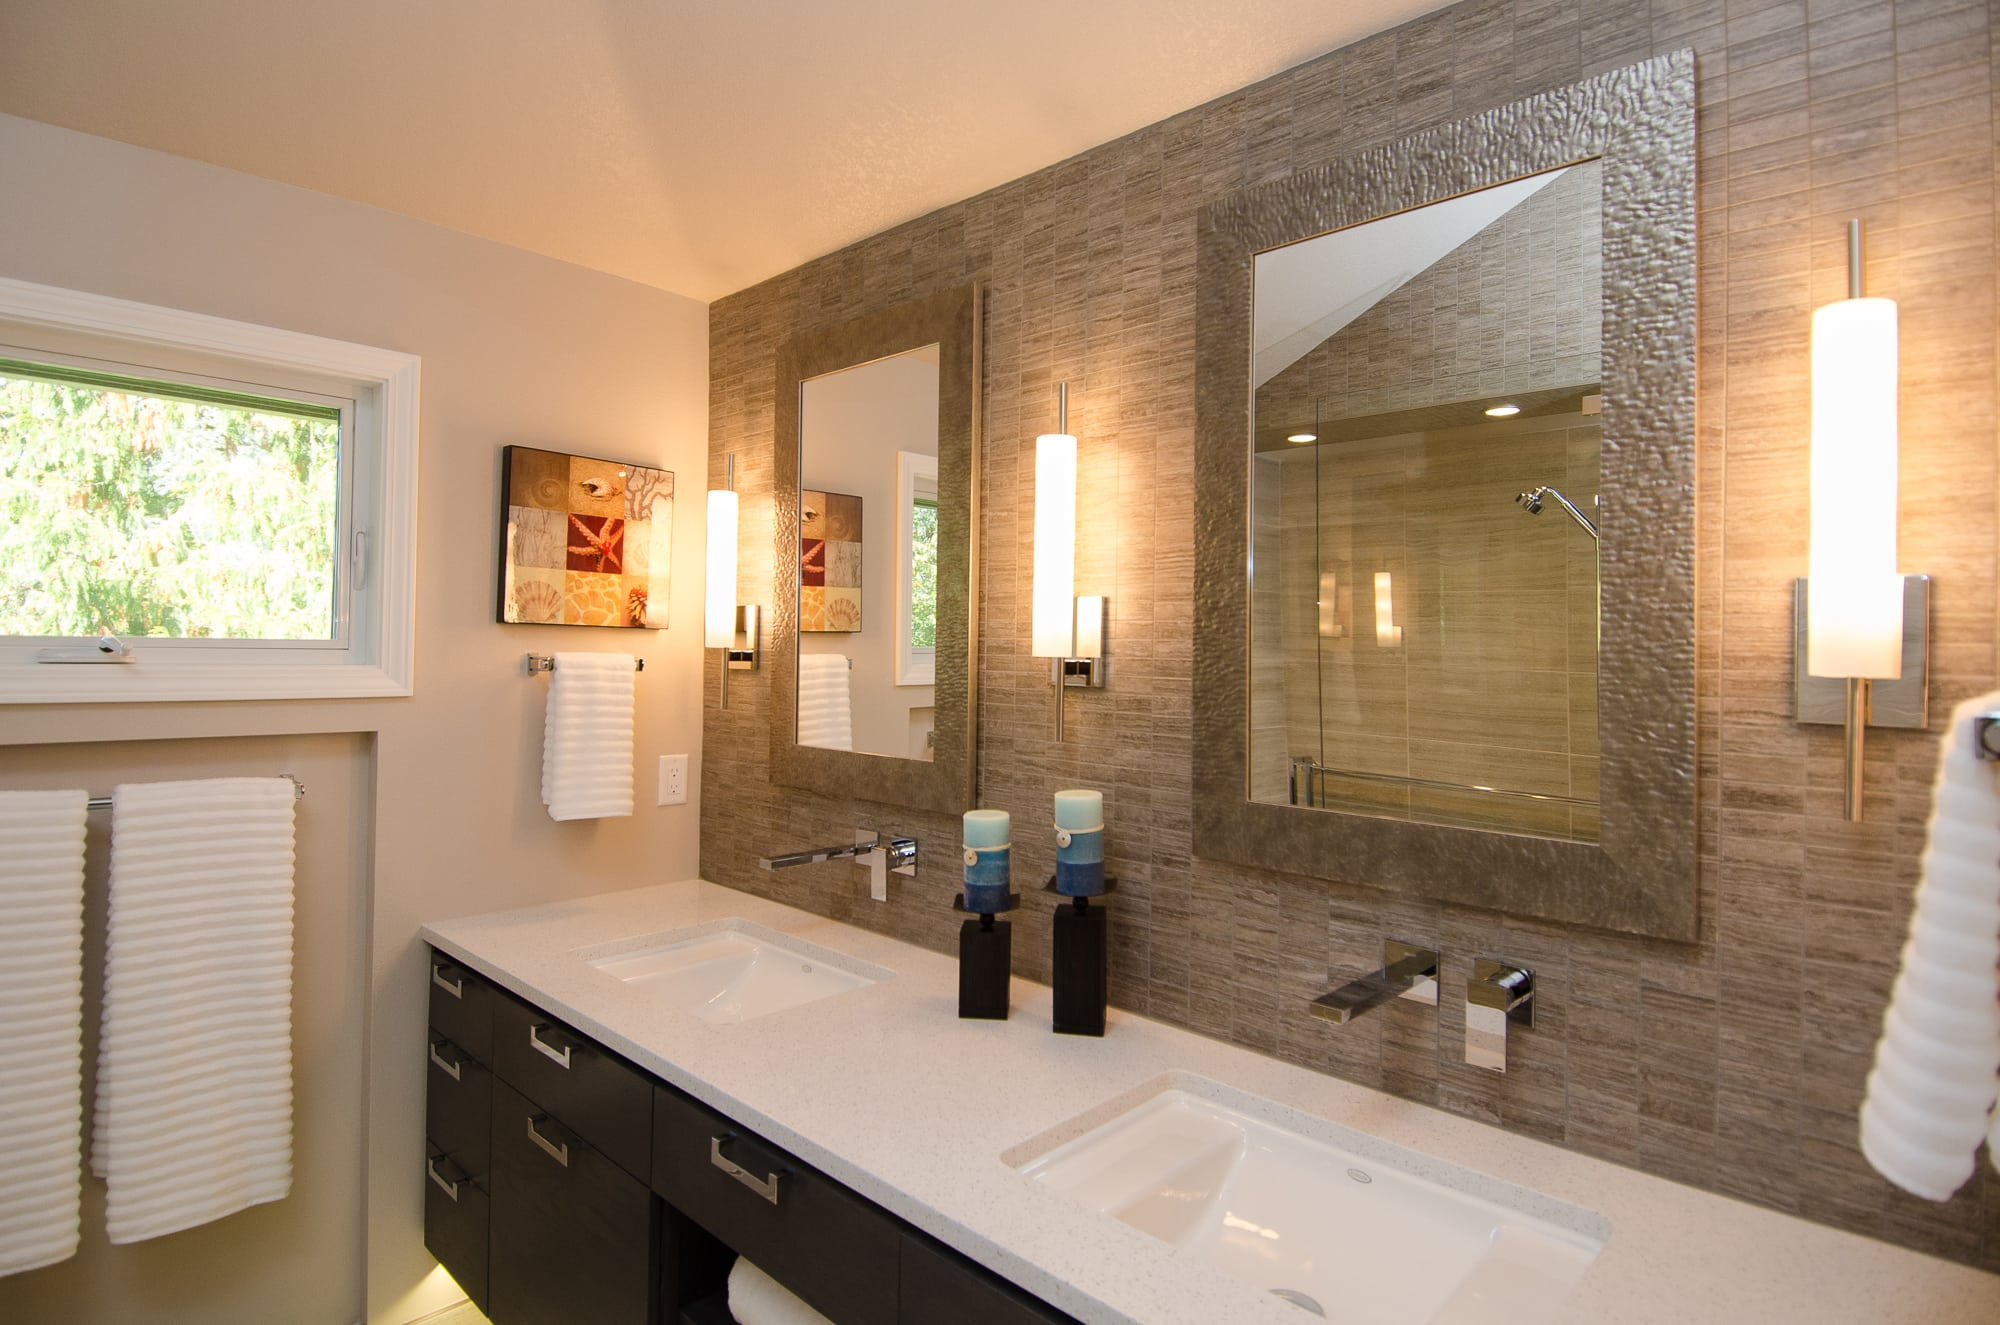 Double Sink Vanity with Wall mounted faucets